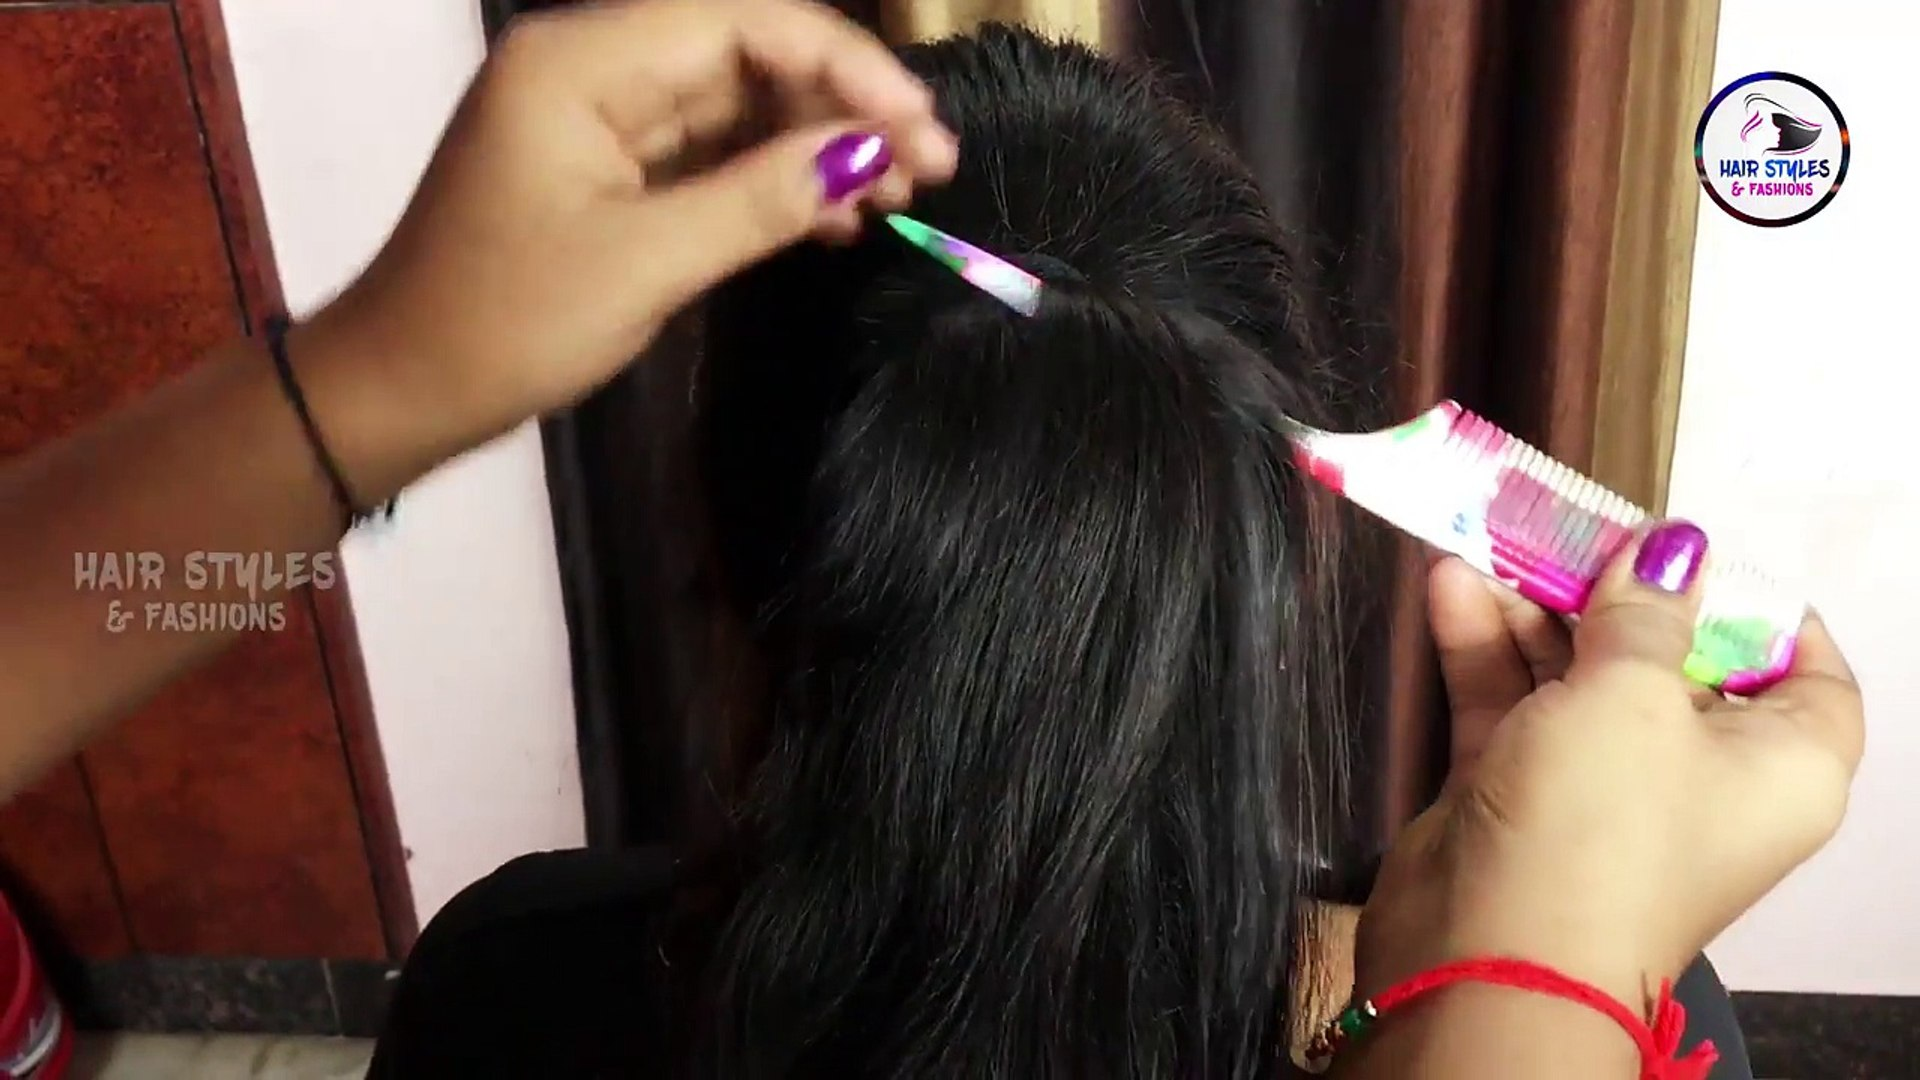 Simple and Easy Beautiful hair style for Women - Bridal Hair Style - Hair Styles &  Fashions